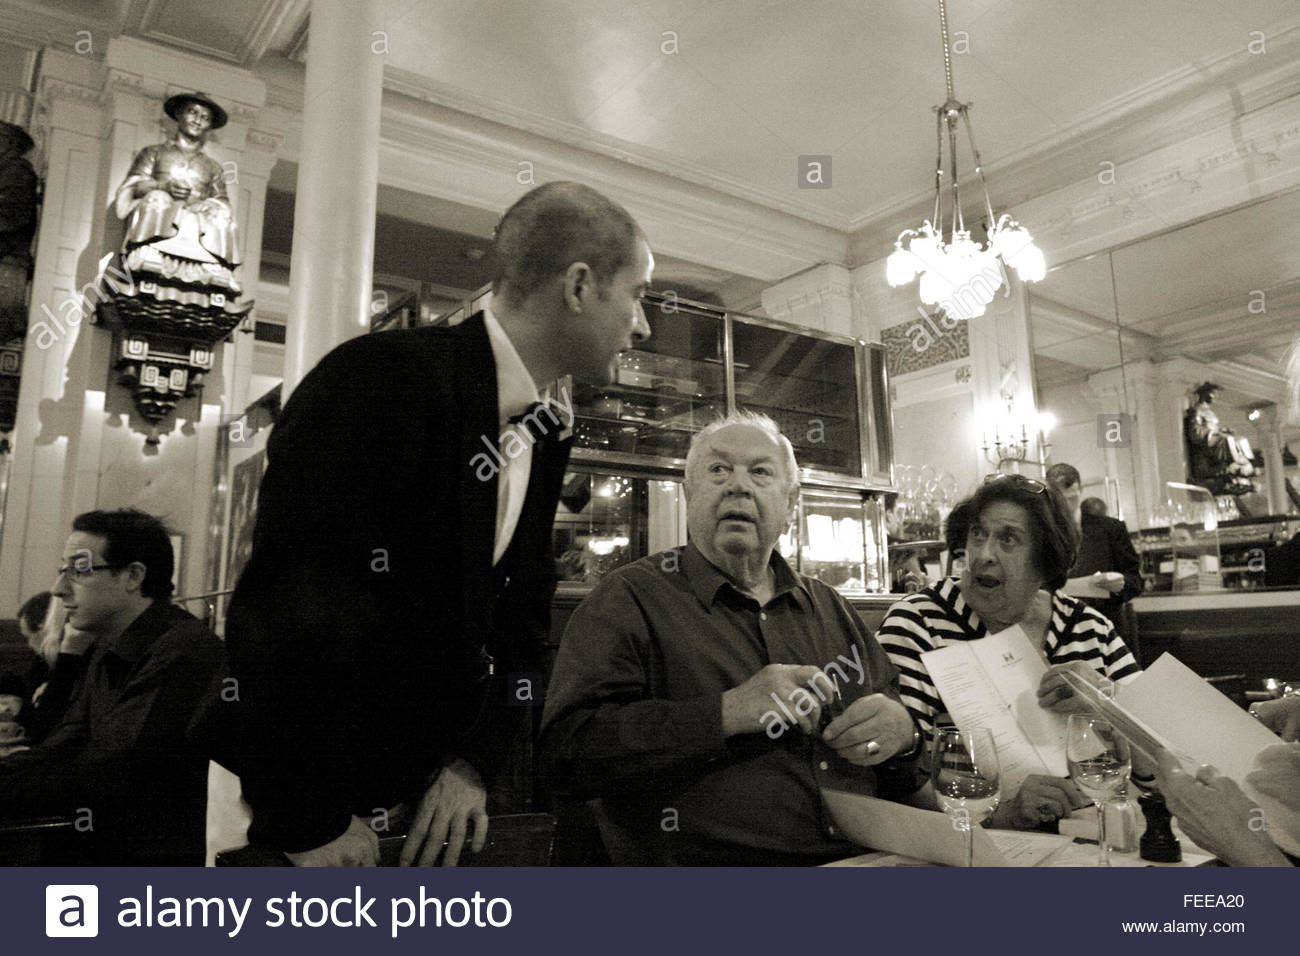 an american couple order from waiter at les deux magots cafe paris stock photo 94972248 alamy. Black Bedroom Furniture Sets. Home Design Ideas